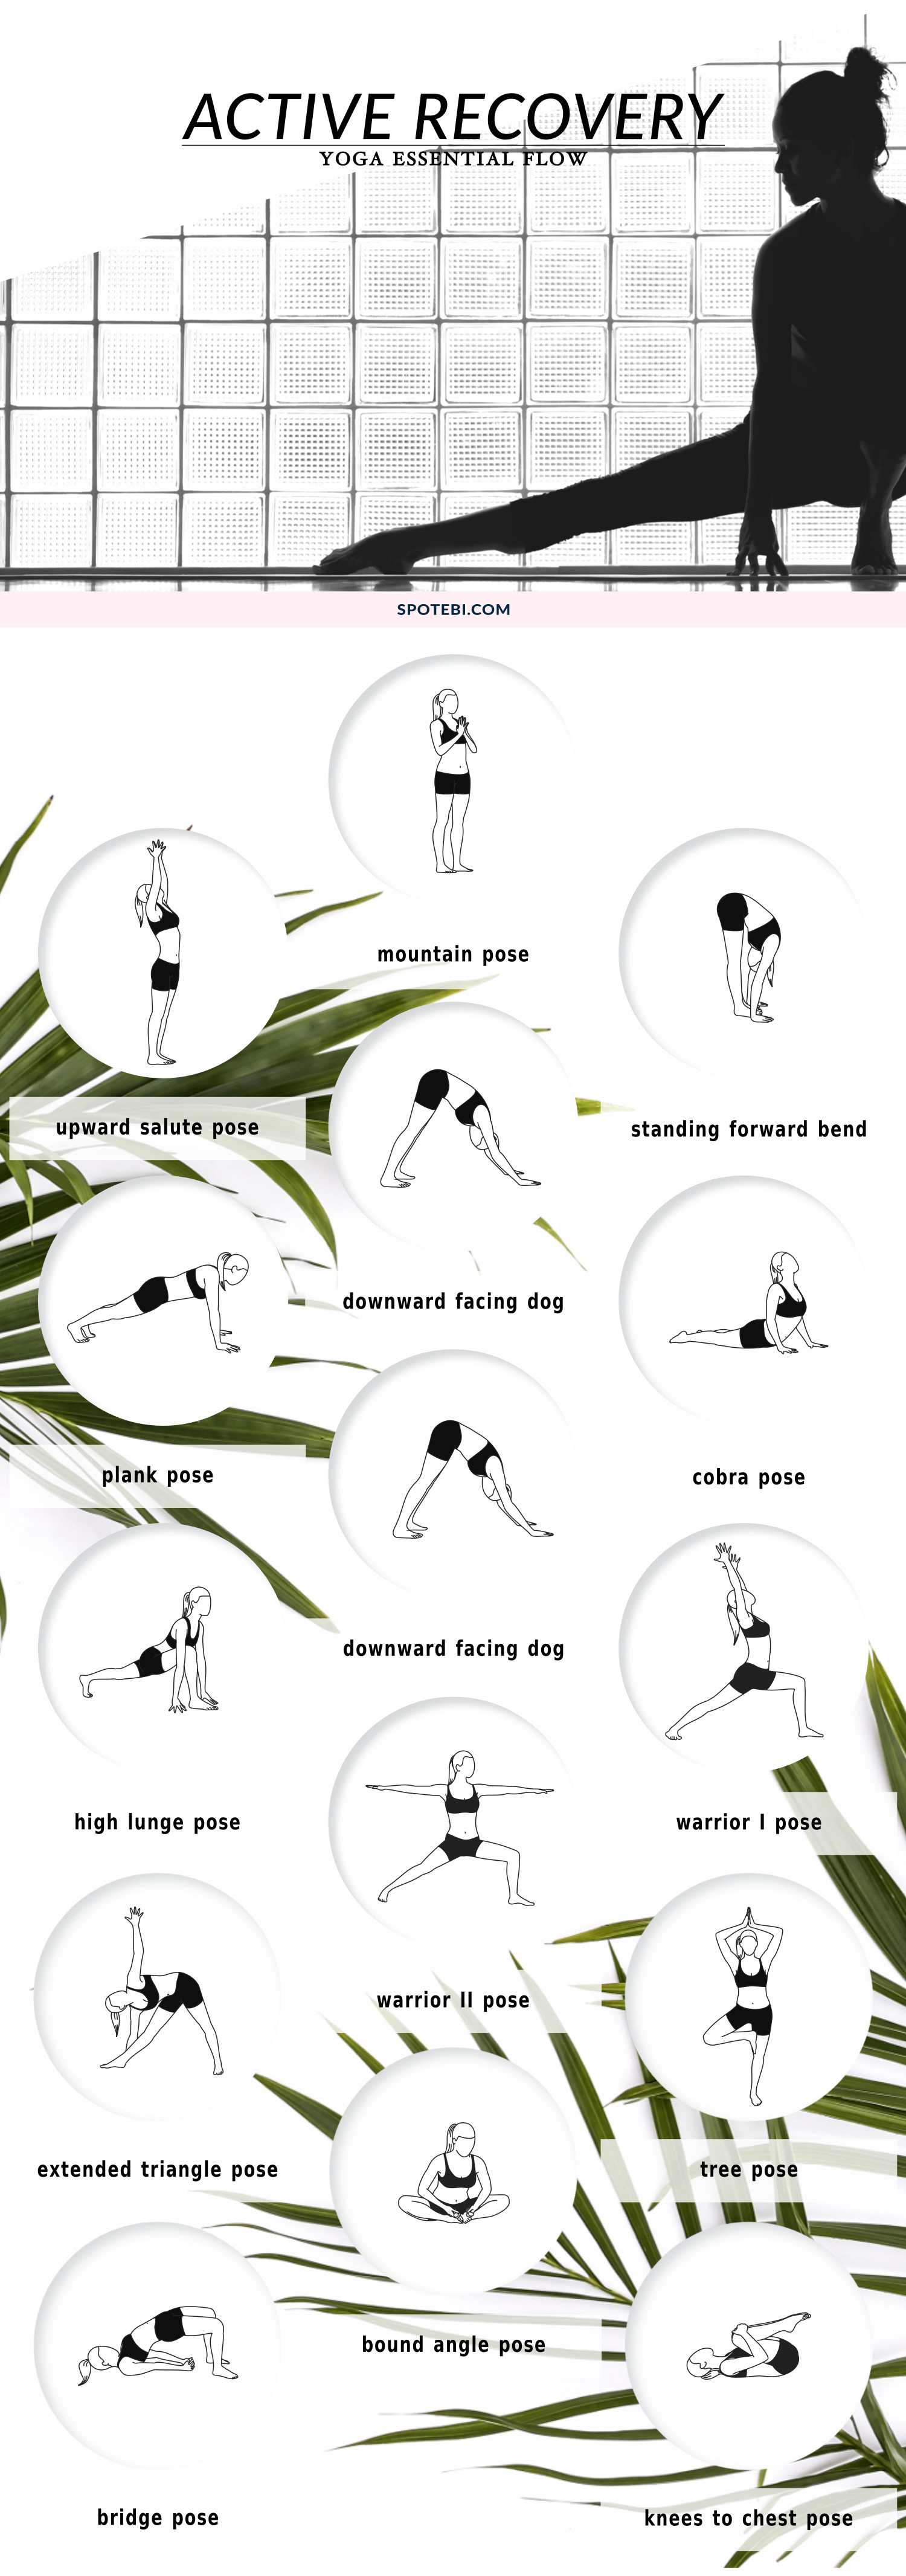 Turn your rest days into active recovery and maximize your body's repair with this 19-minute yoga essential flow. Take deep breaths to increase blood flow, and lengthen your muscles and tendons to increase your body's mobility and flexibility. http://www.spotebi.com/yoga-sequences/pms-cramps-relief-flow/